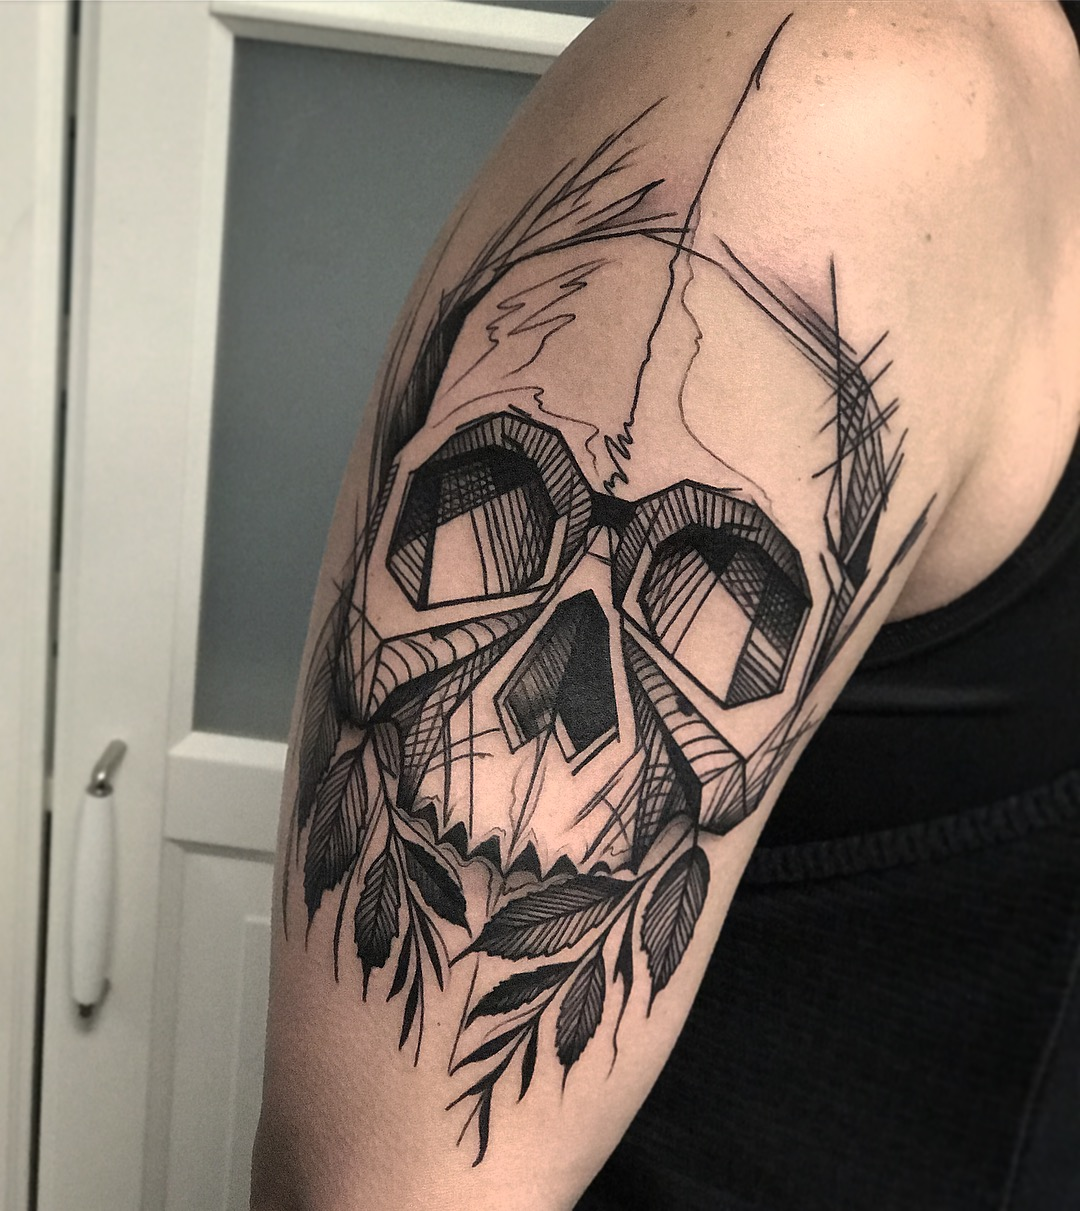 Blackwork Sketchy Skull and Leaves Tattoo by David Mushaney